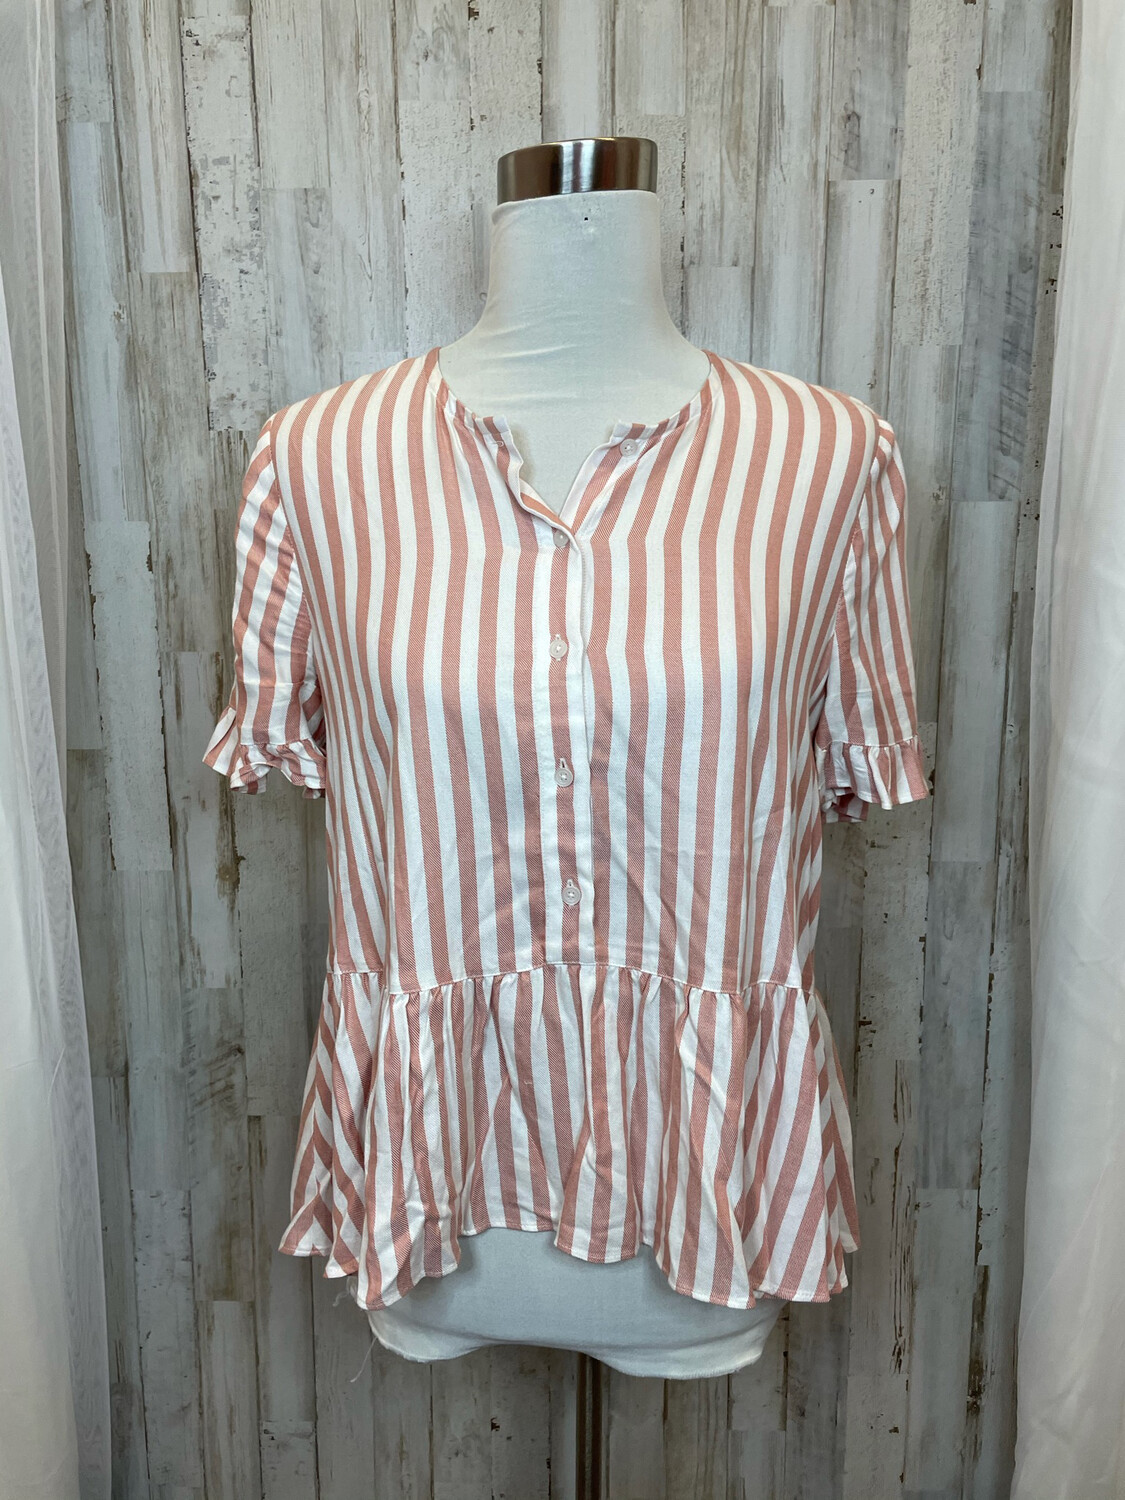 Madewell Dusty Rose & Cream Striped Button Up Top - M